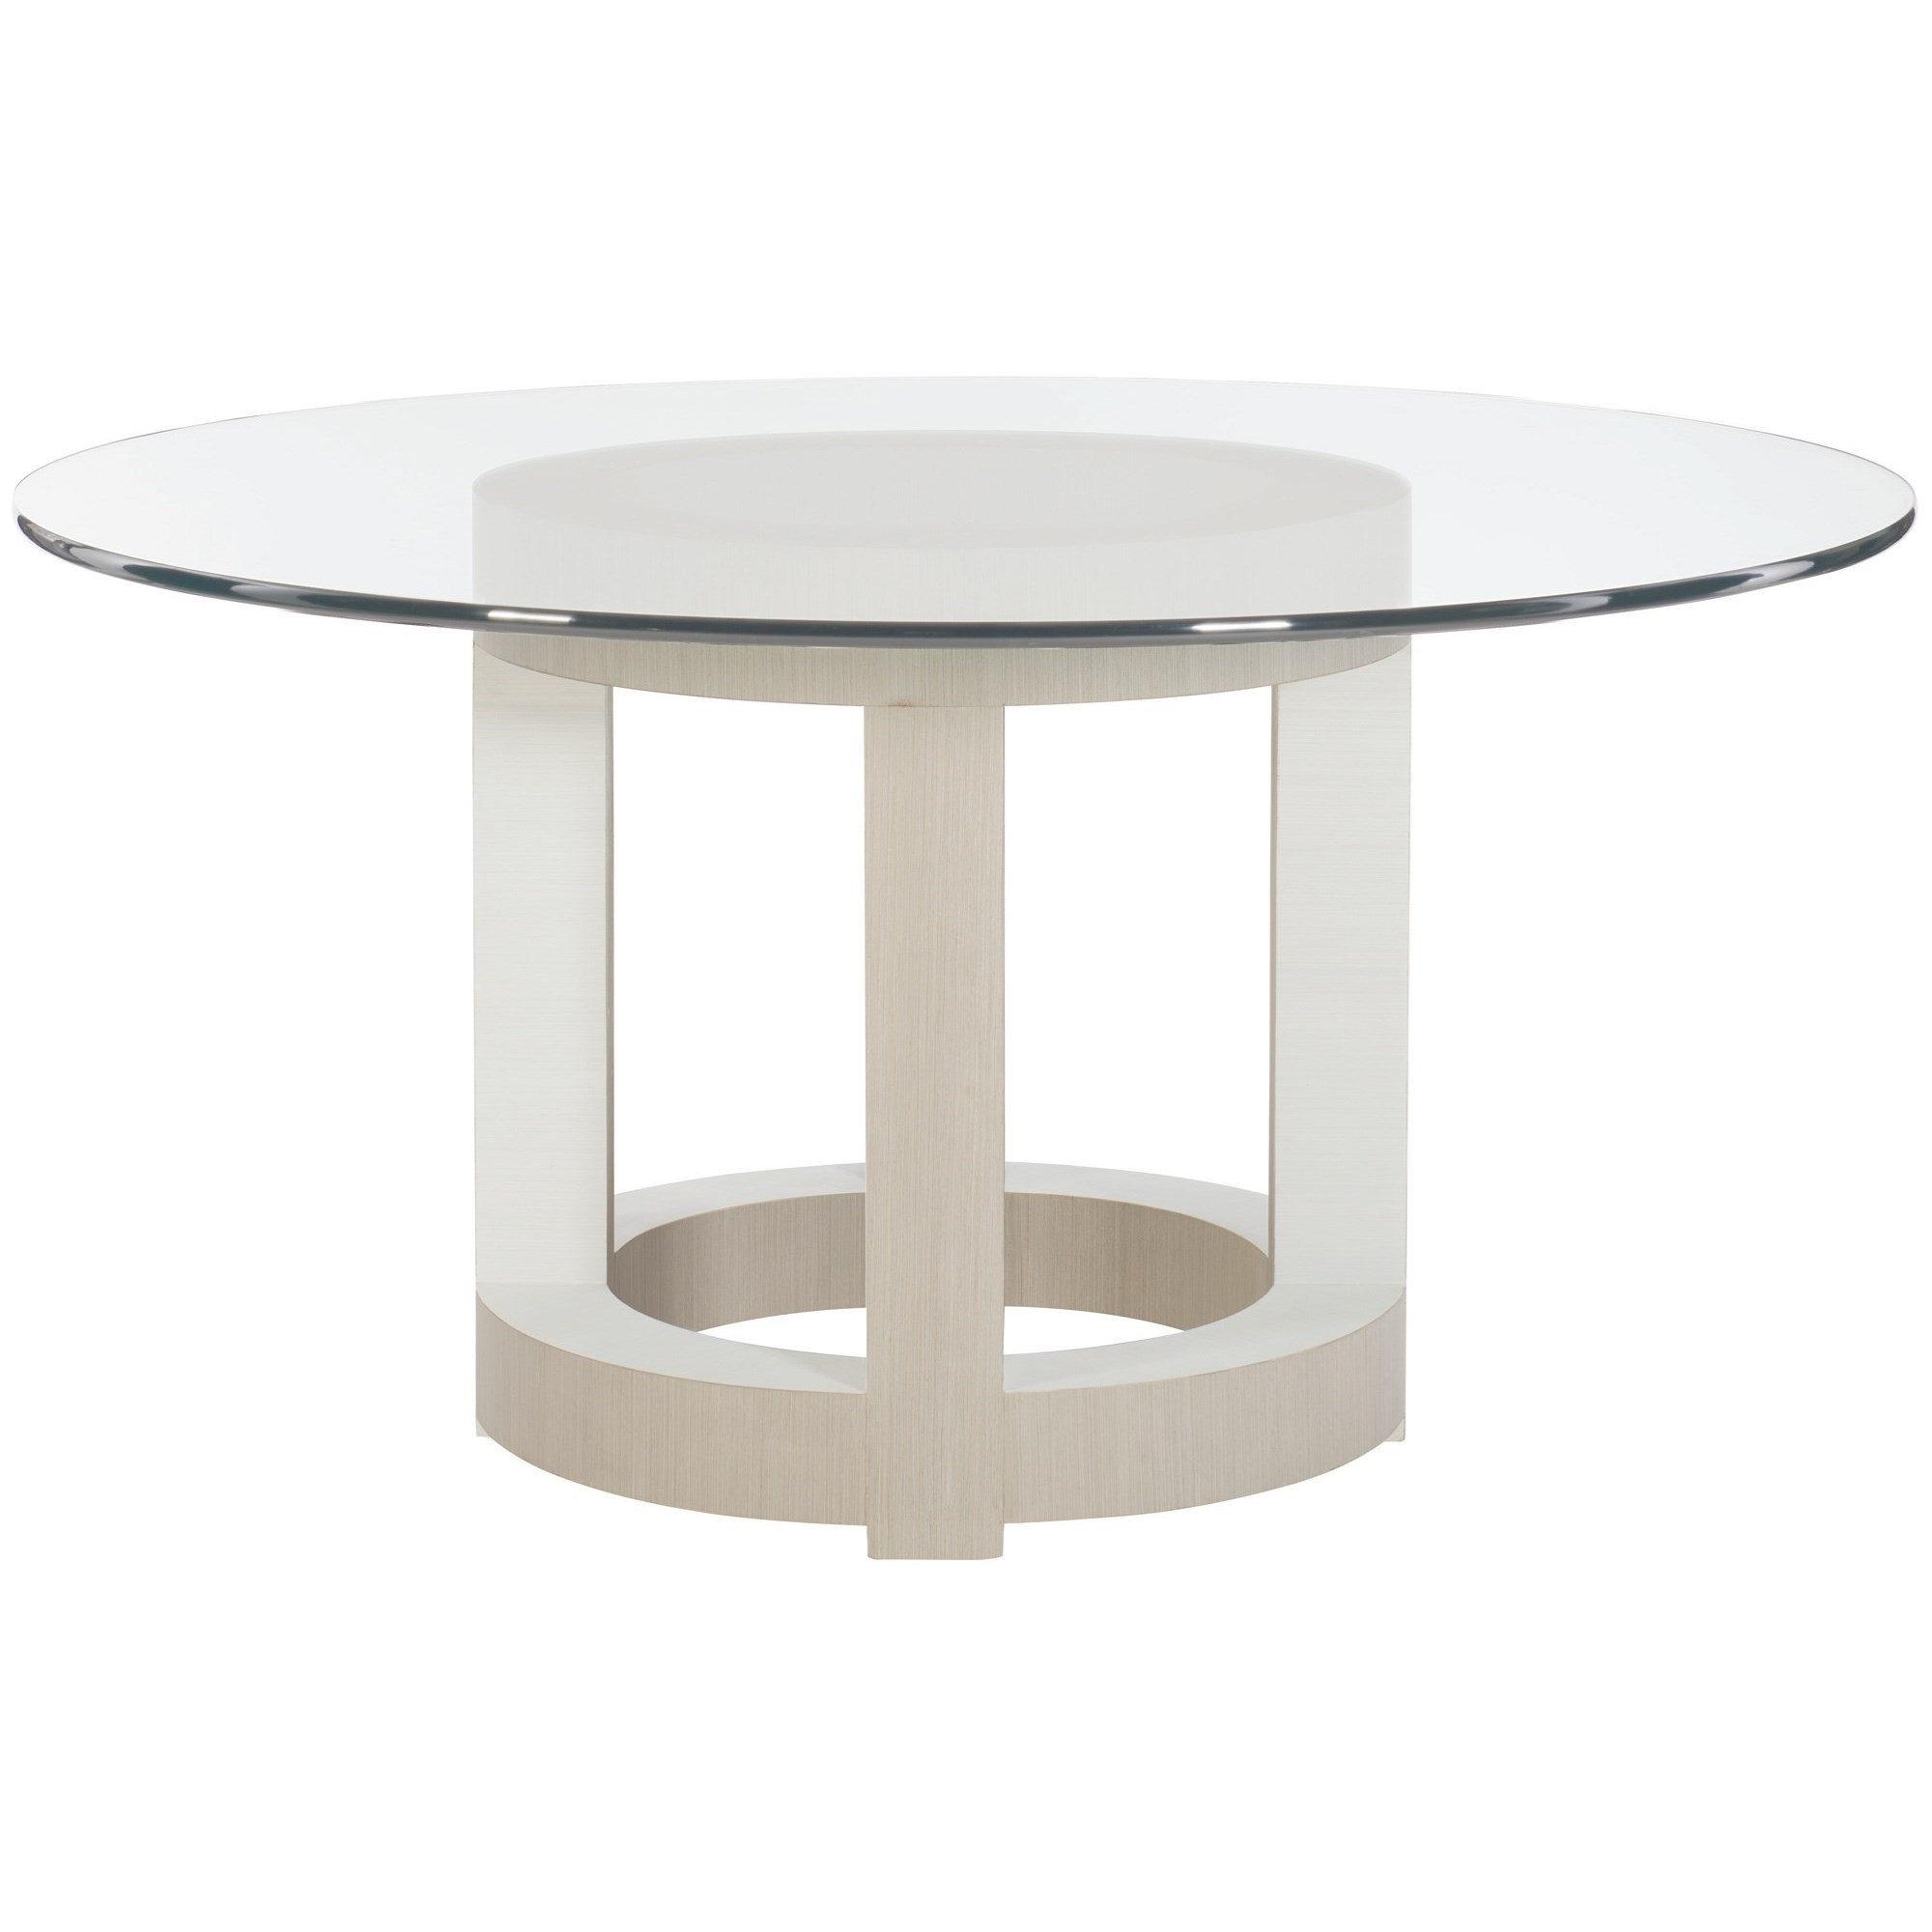 Axiom Round Dining Table at Williams & Kay